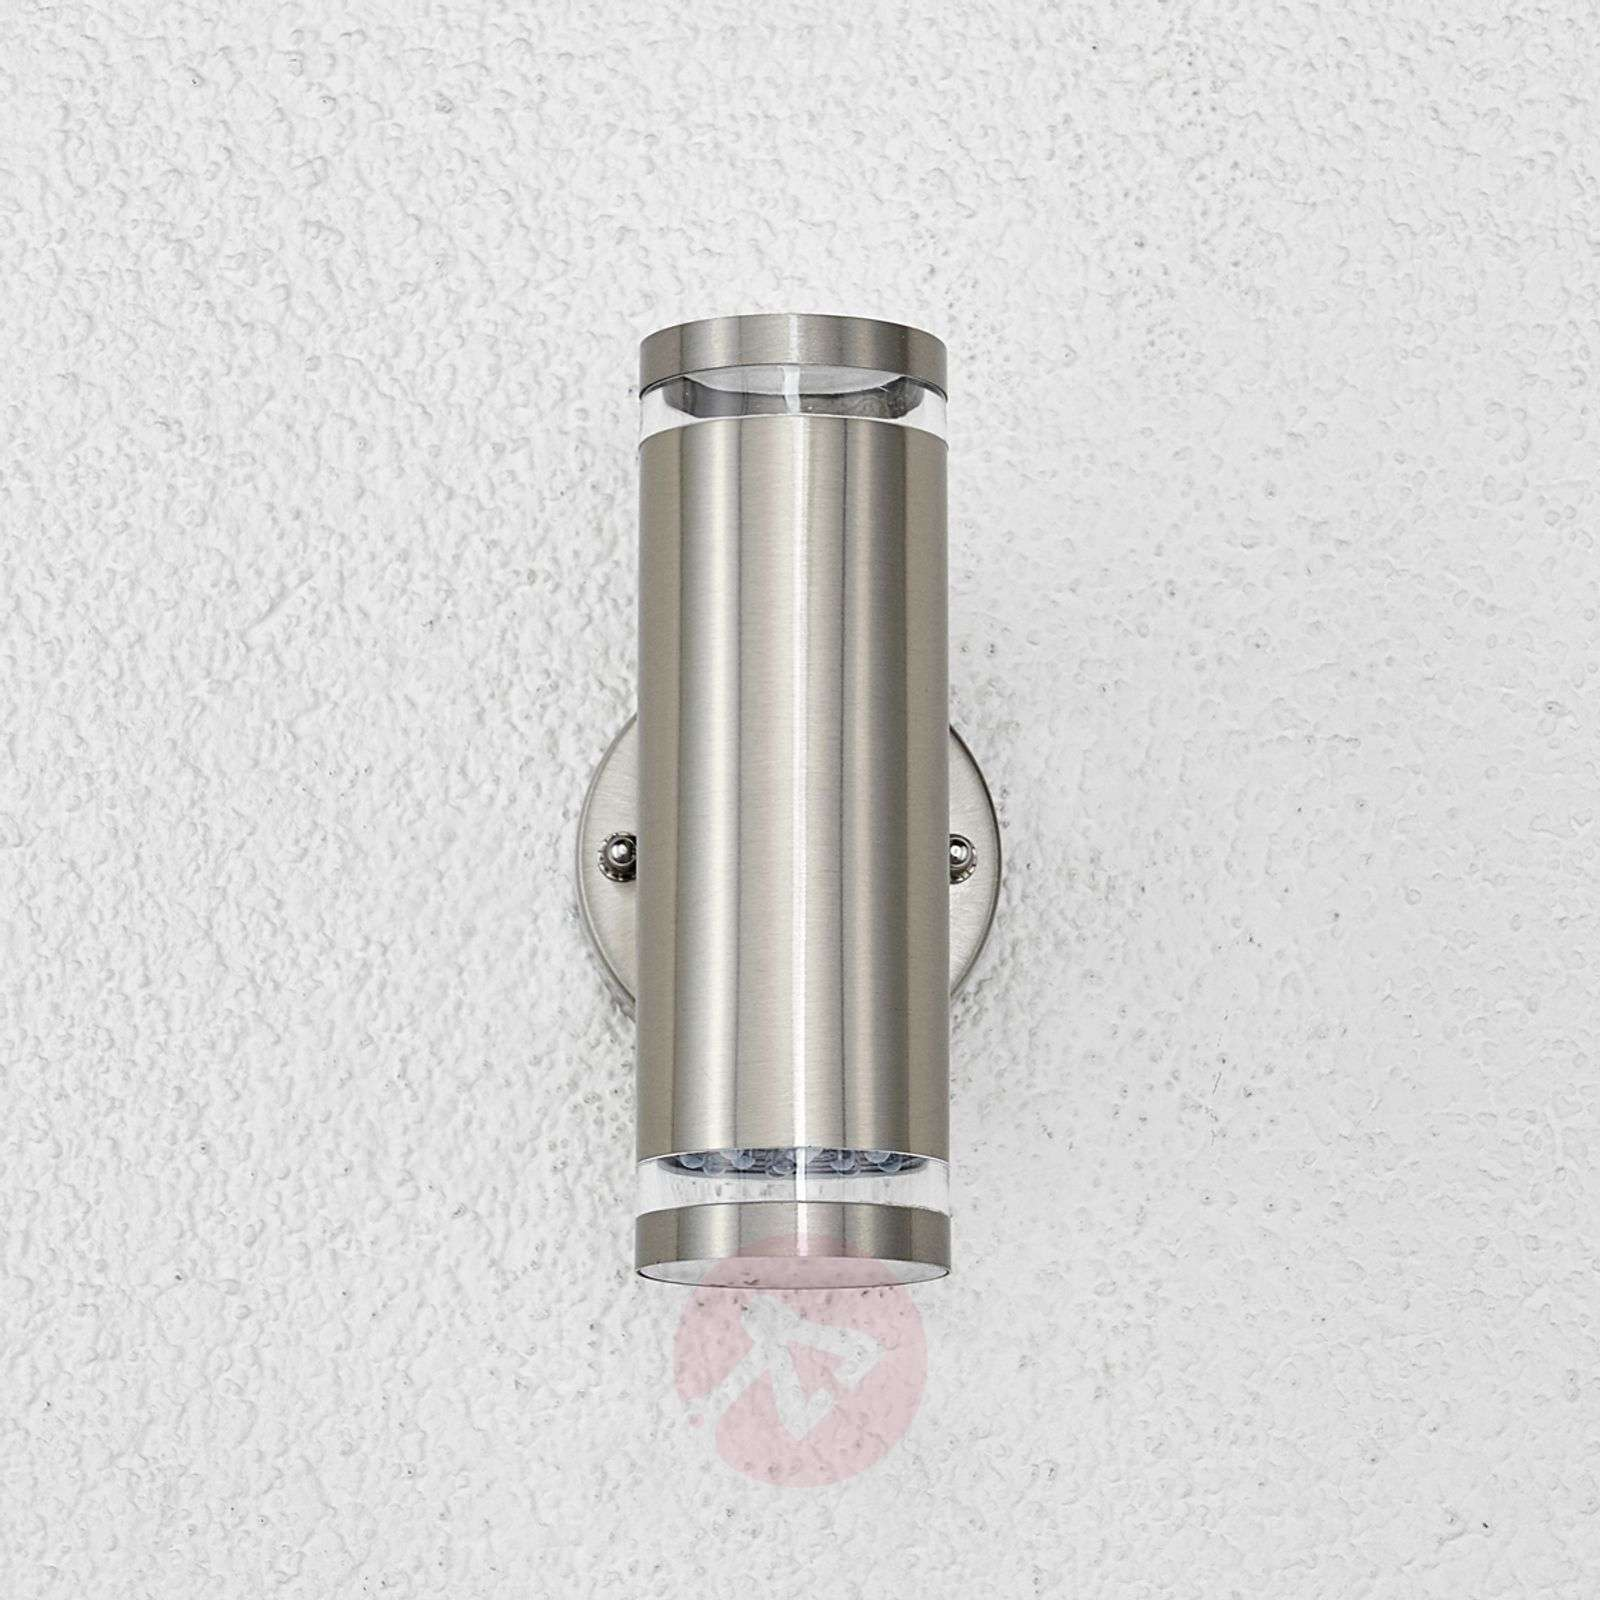 Tiberus stainless steel LED outdoor wall light-9960049-01